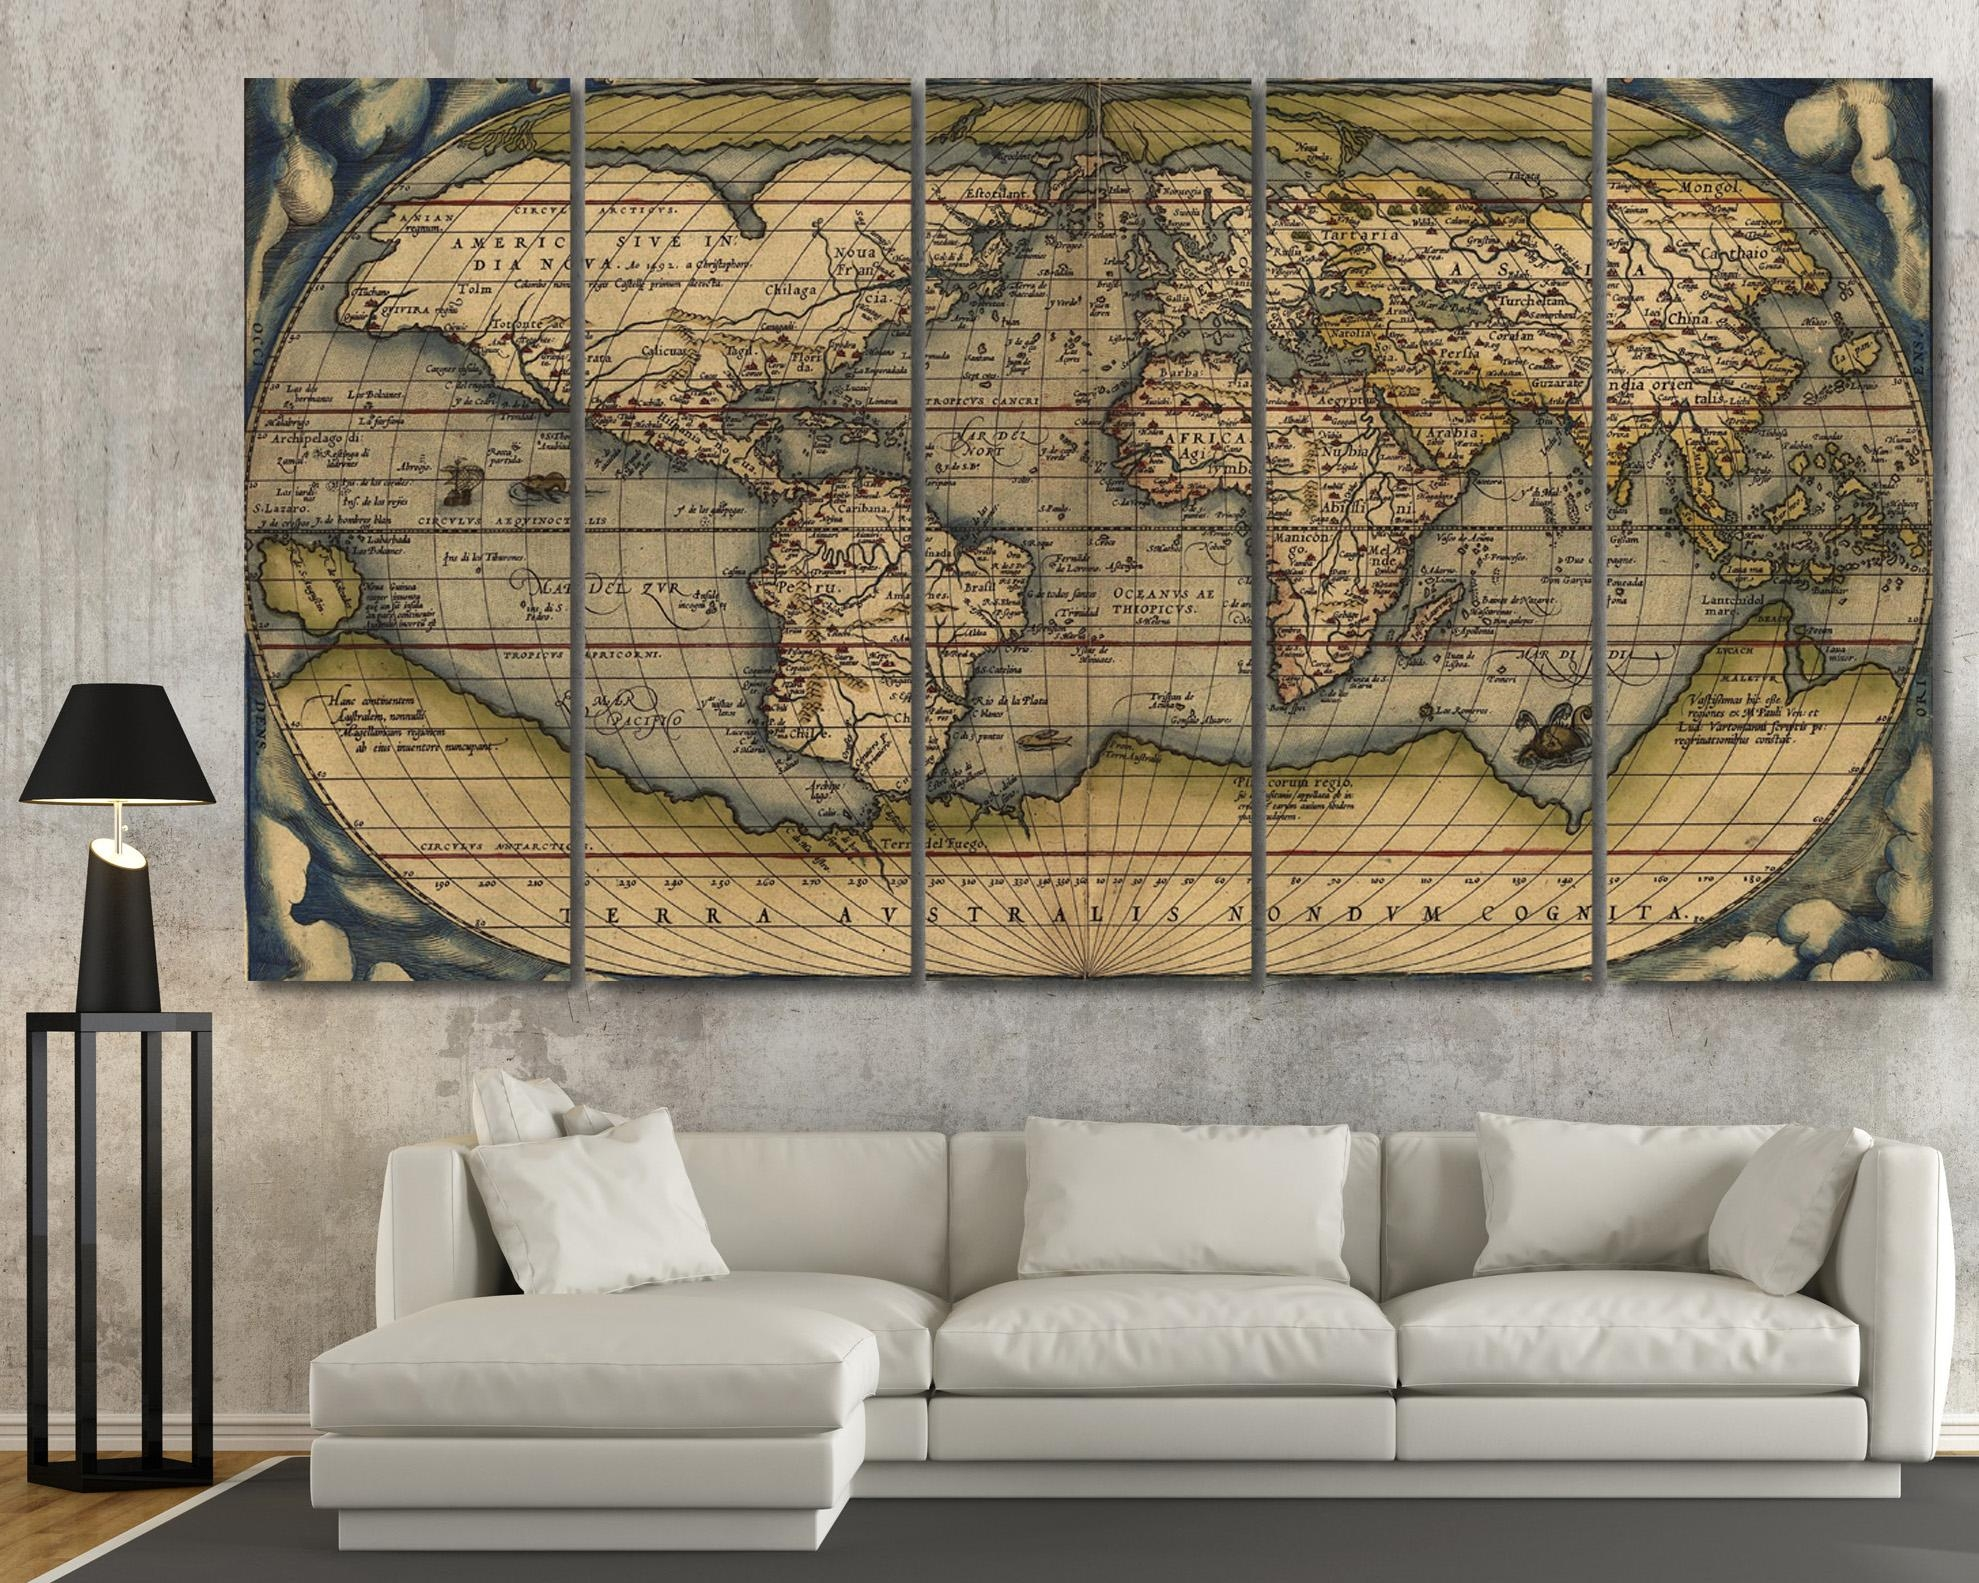 Large Vintage Wall Art Old World Map At Texelprintart For Old World Map Wall Art (View 6 of 20)